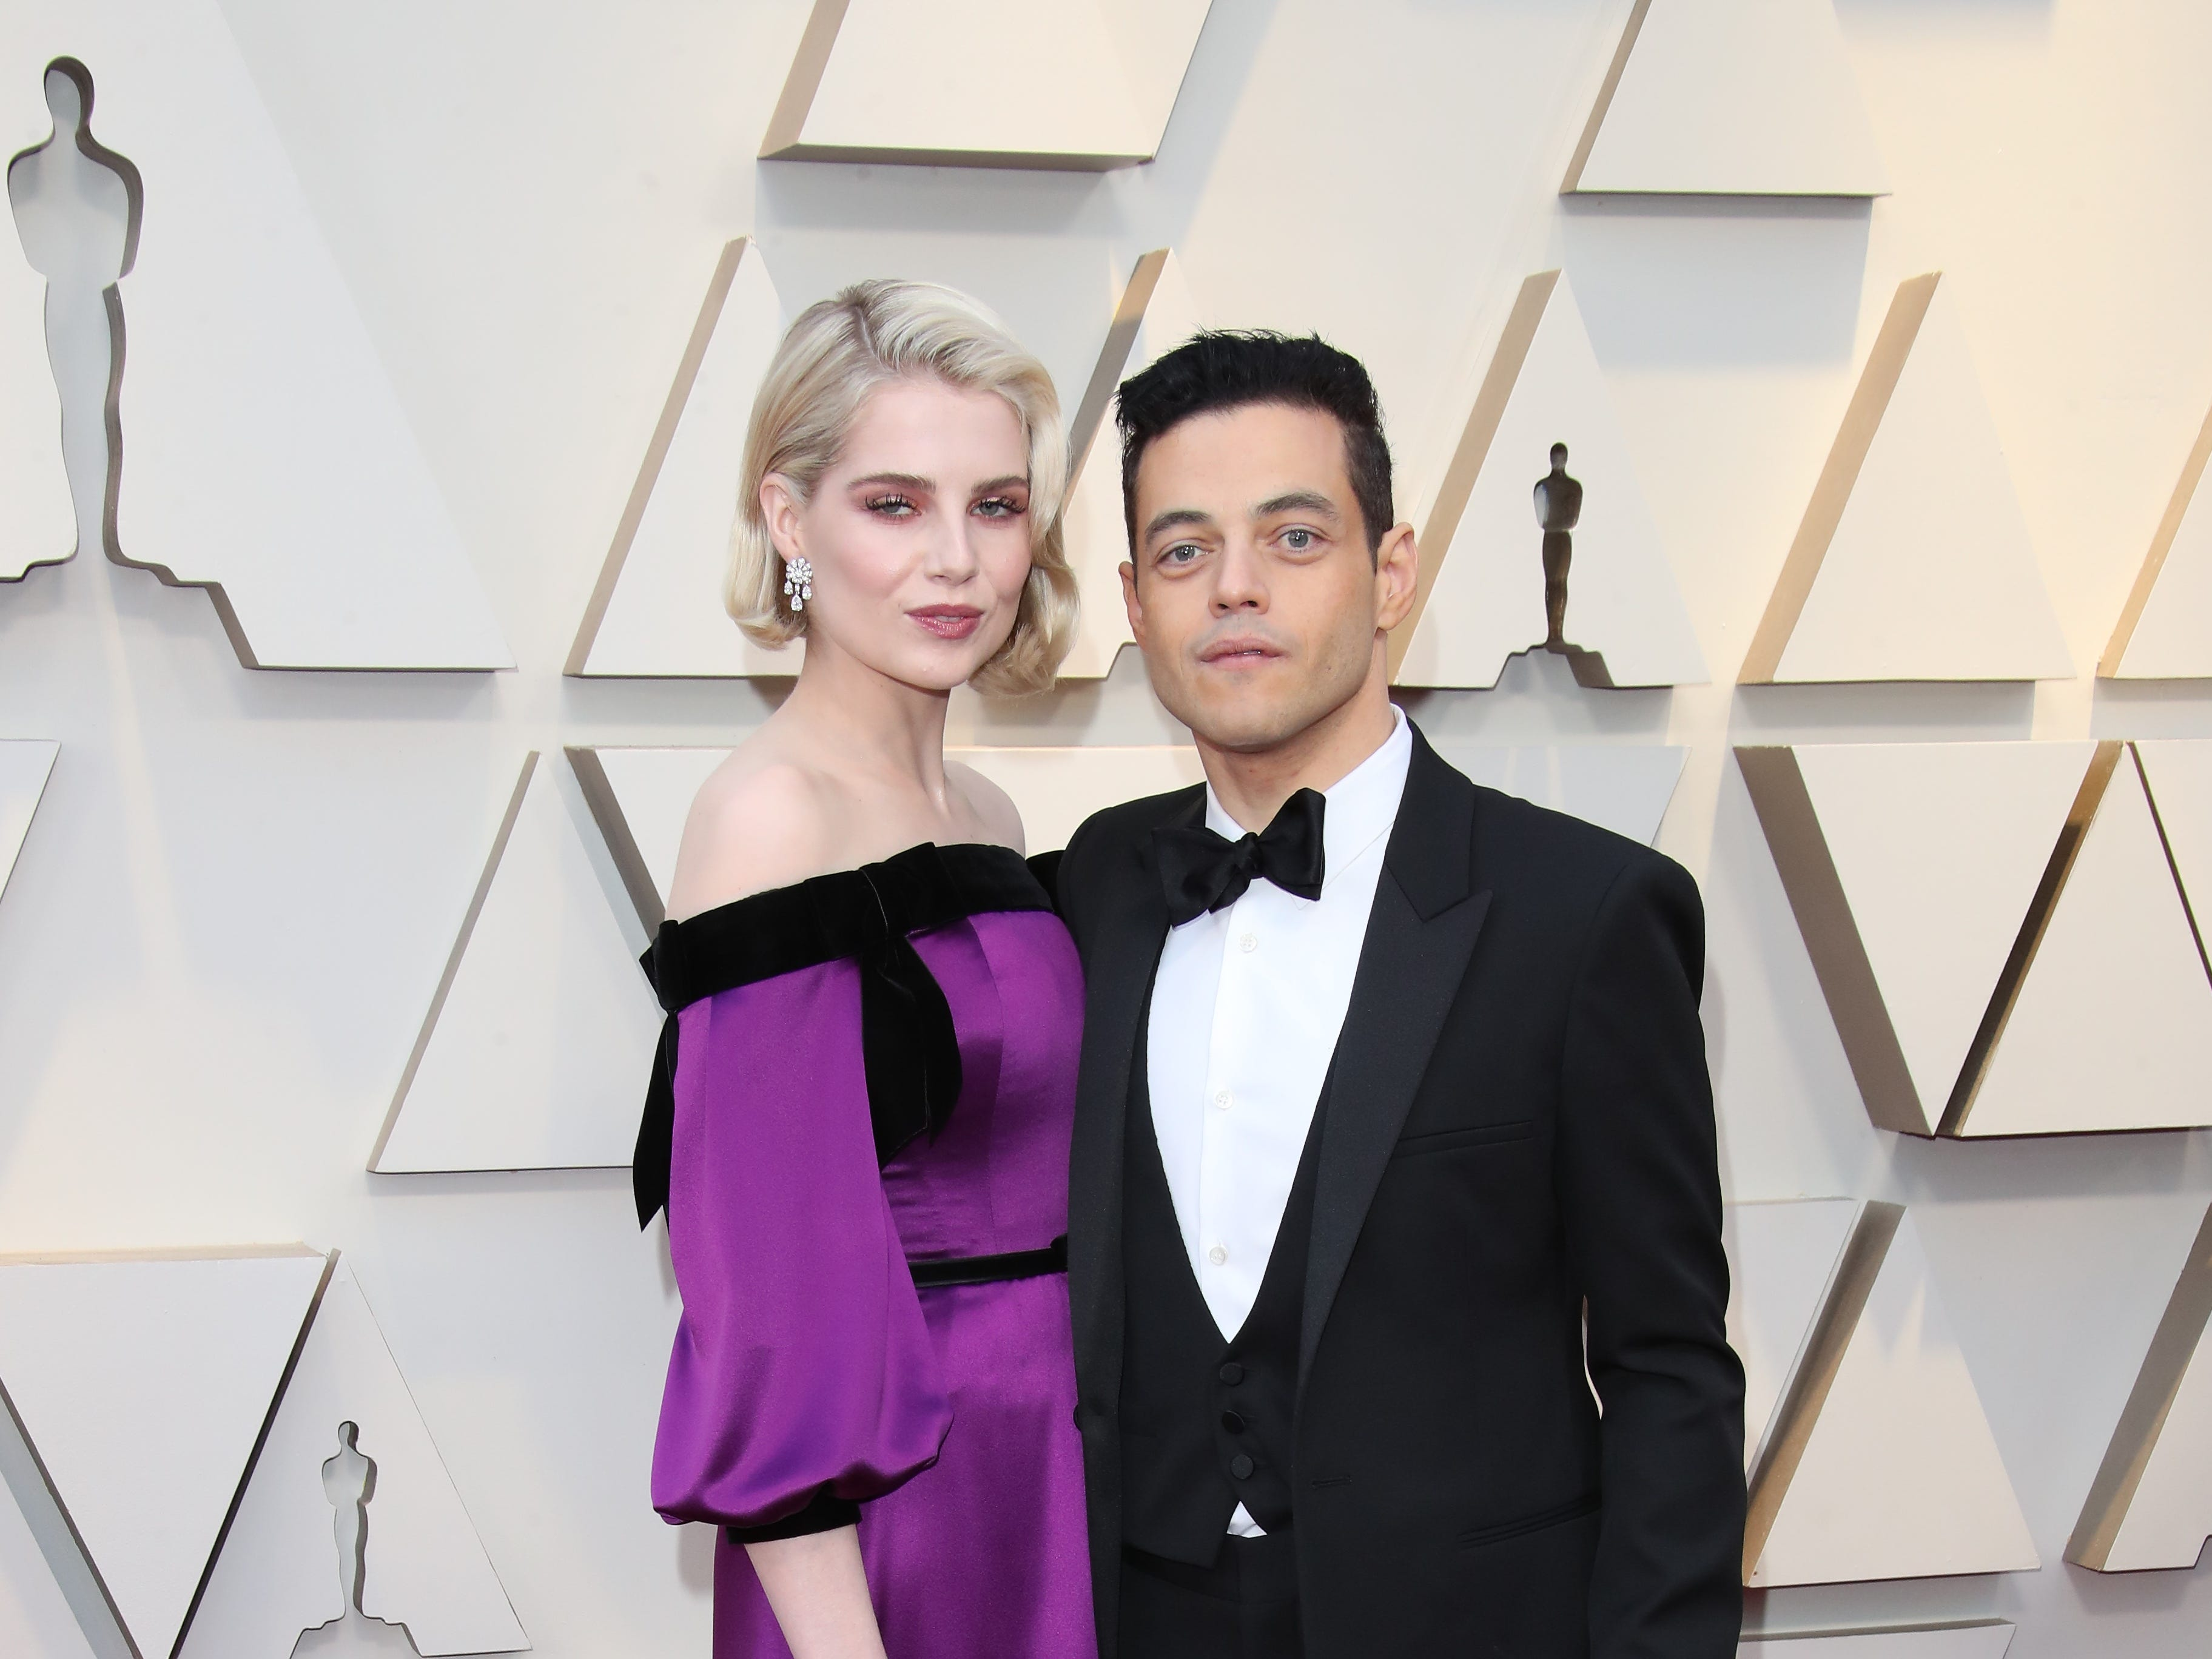 February 24, 2019; Los Angeles, CA, USA; Lucy Boynton, left, and Rami Malek arrive at the 91st Academy Awards at the Dolby Theatre. Mandatory Credit: Dan MacMedan-USA TODAY NETWORK (Via OlyDrop)